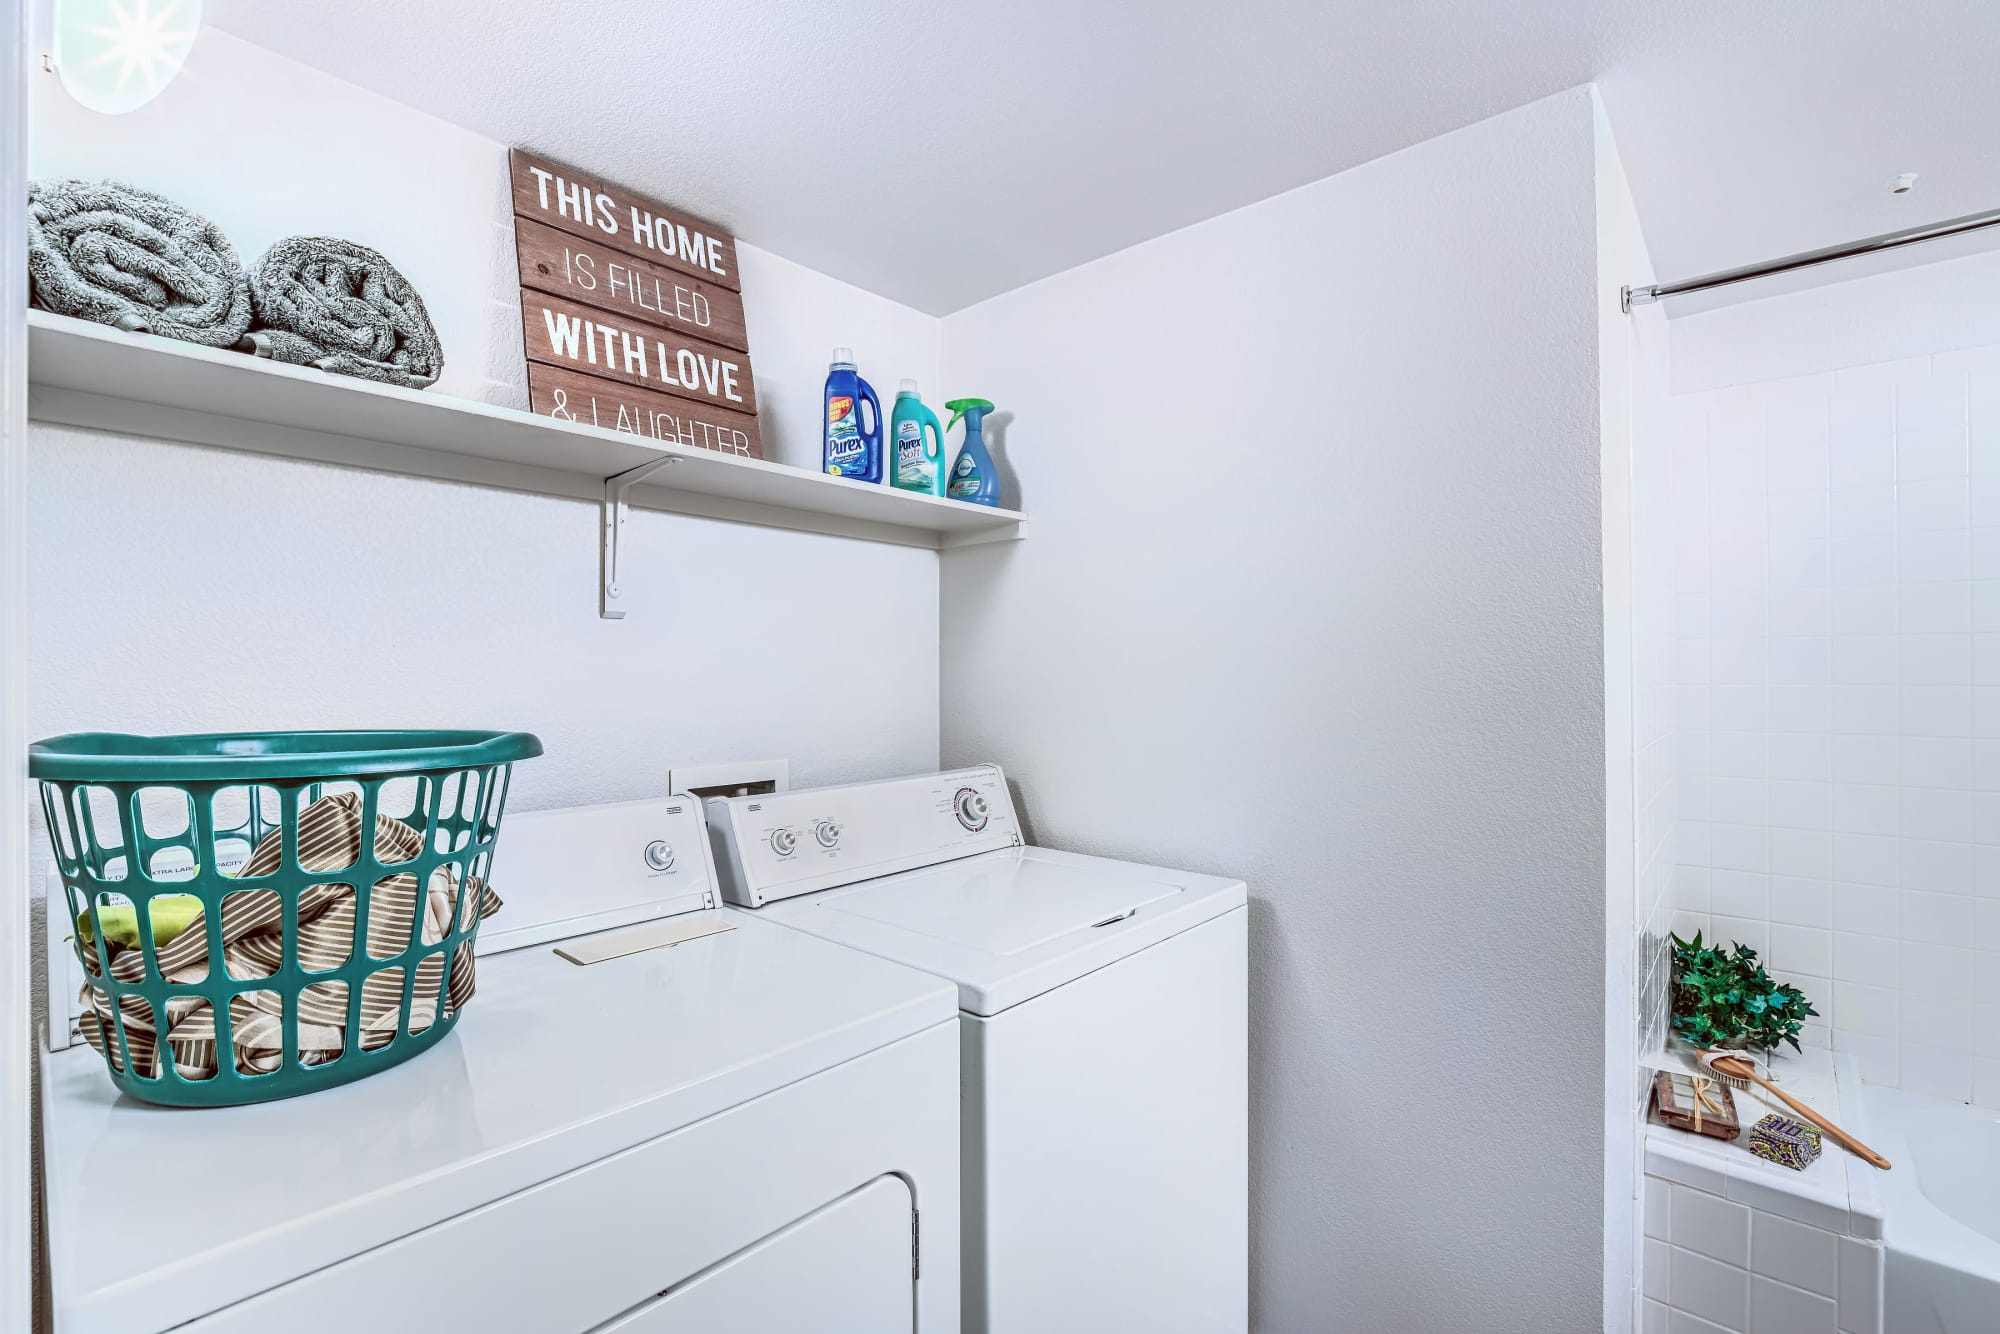 All of our units at Portola Del Sol include a washer and dryer